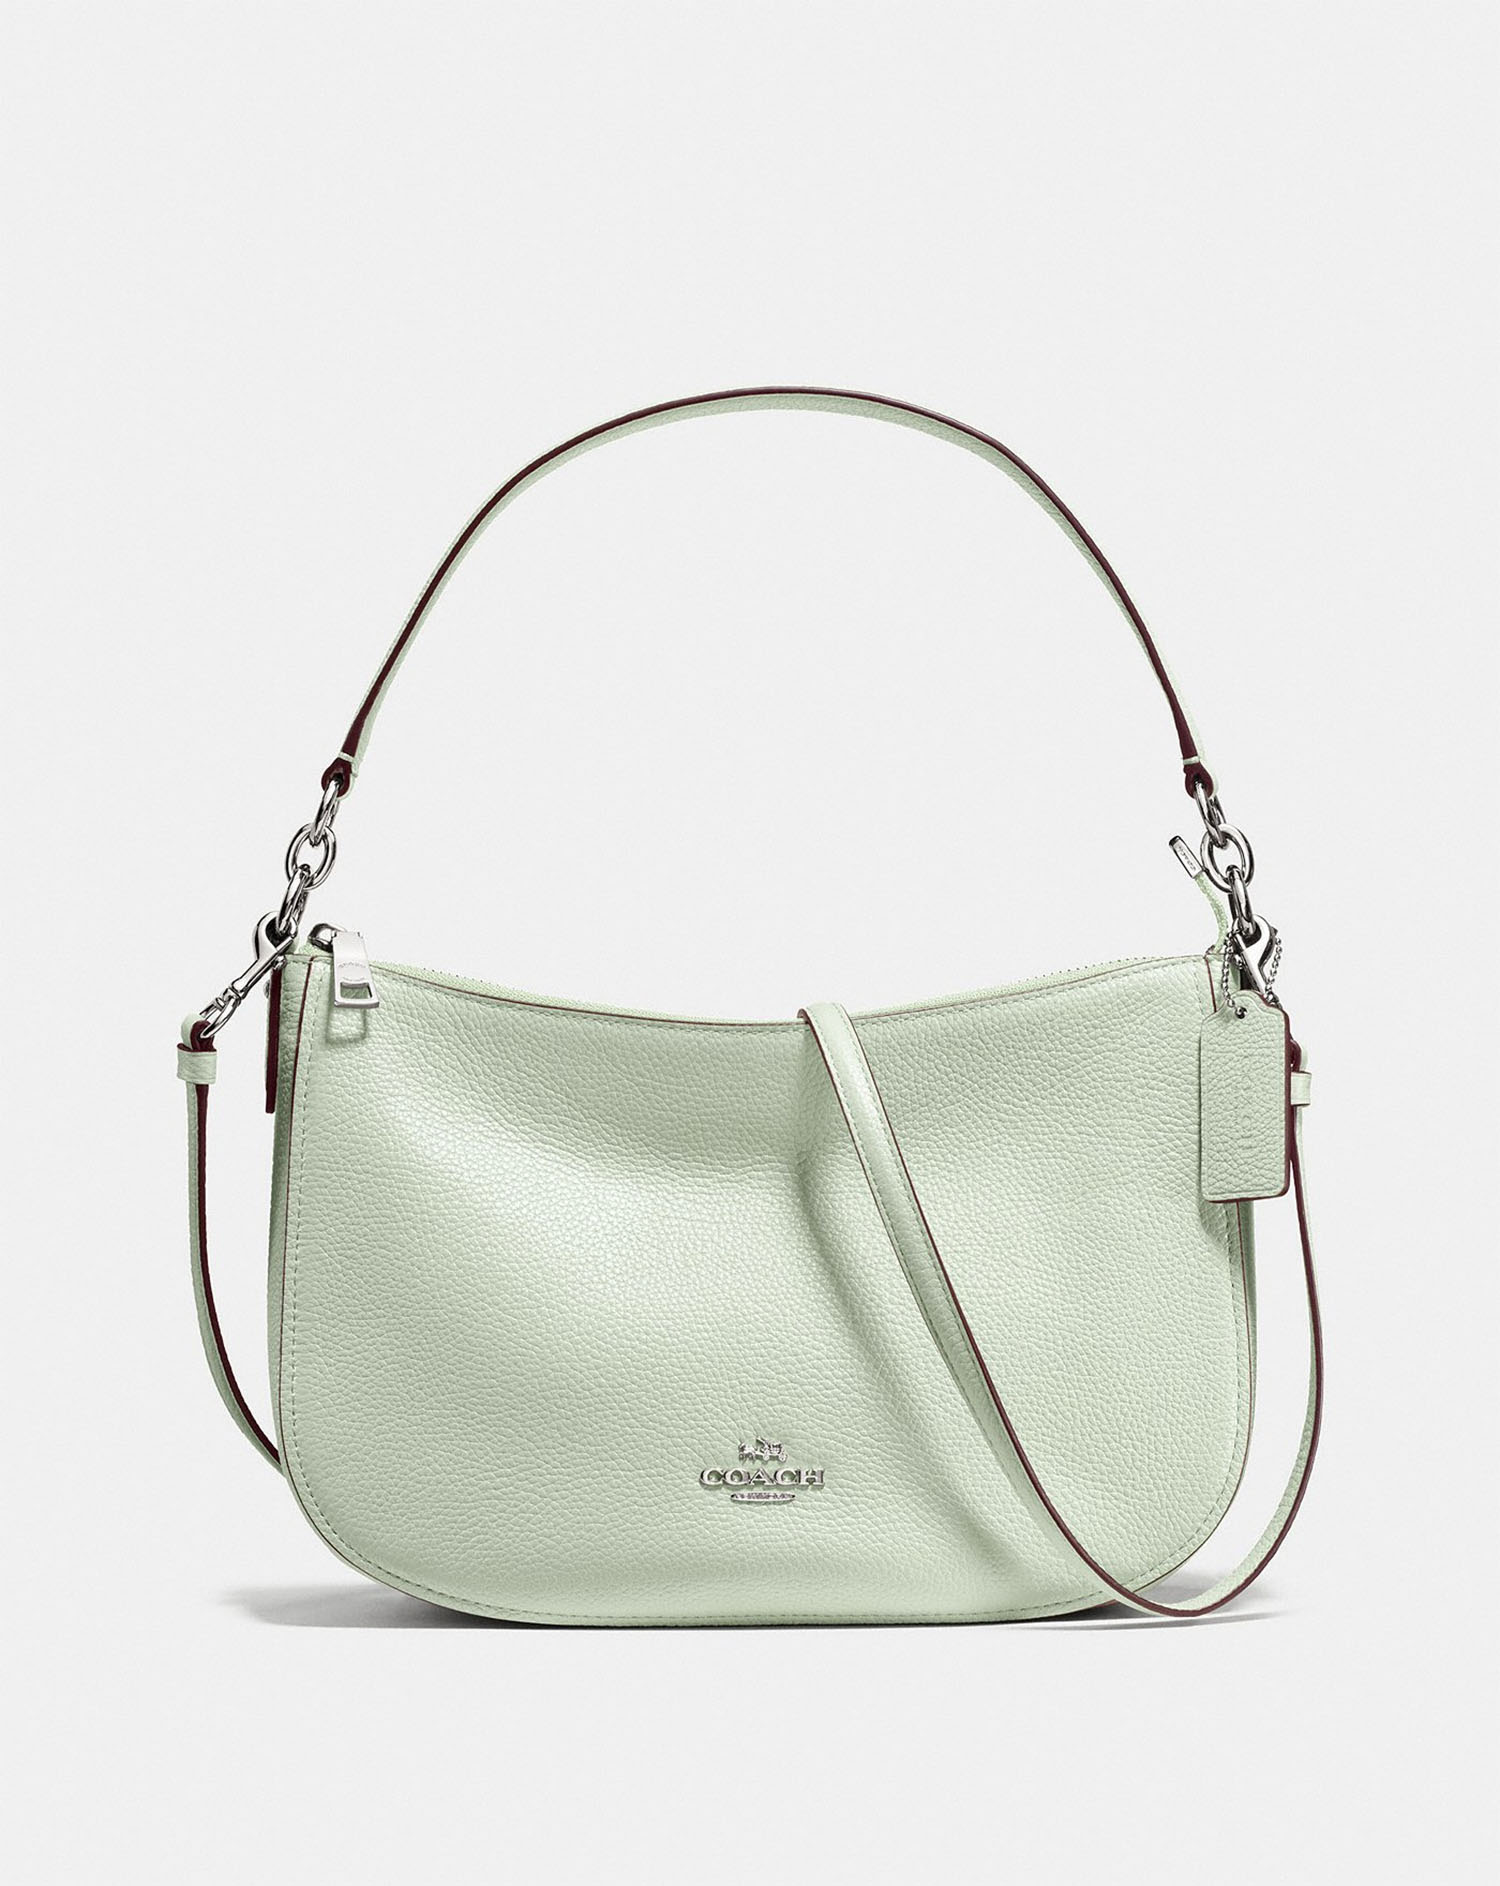 284b13b06 5 Bags We're Obsessed With From Coach's 50% Off Summer Sale | Real ...